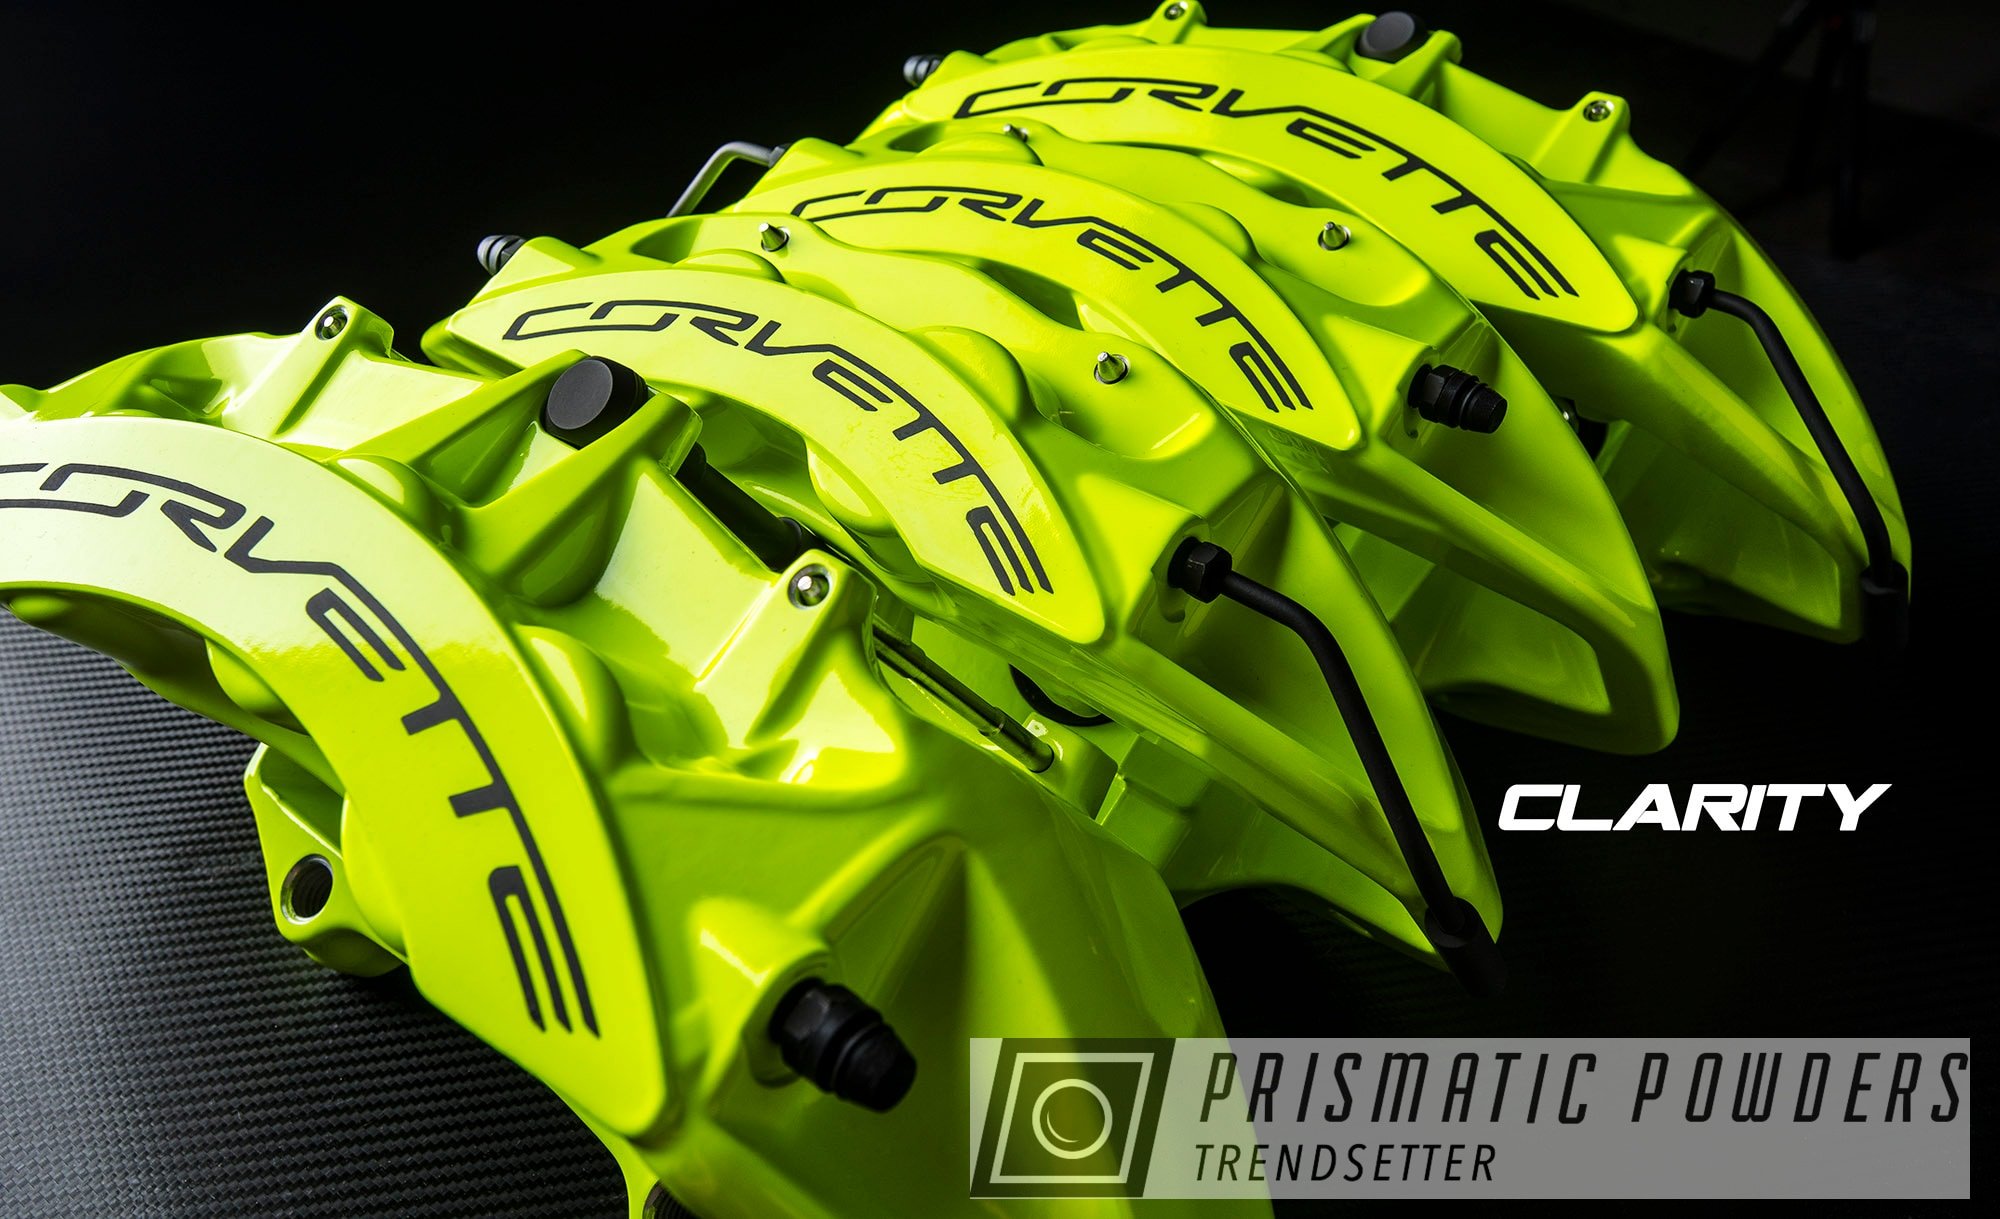 Powder Coating: Automotive,Clear Vision PPS-2974,Brakes,Chevrolet,Brembo,Brake Calipers,Neon Yellow PSS-1104,Brembo Brake Calipers,Corvette ZR1,Corvette,driveclarity